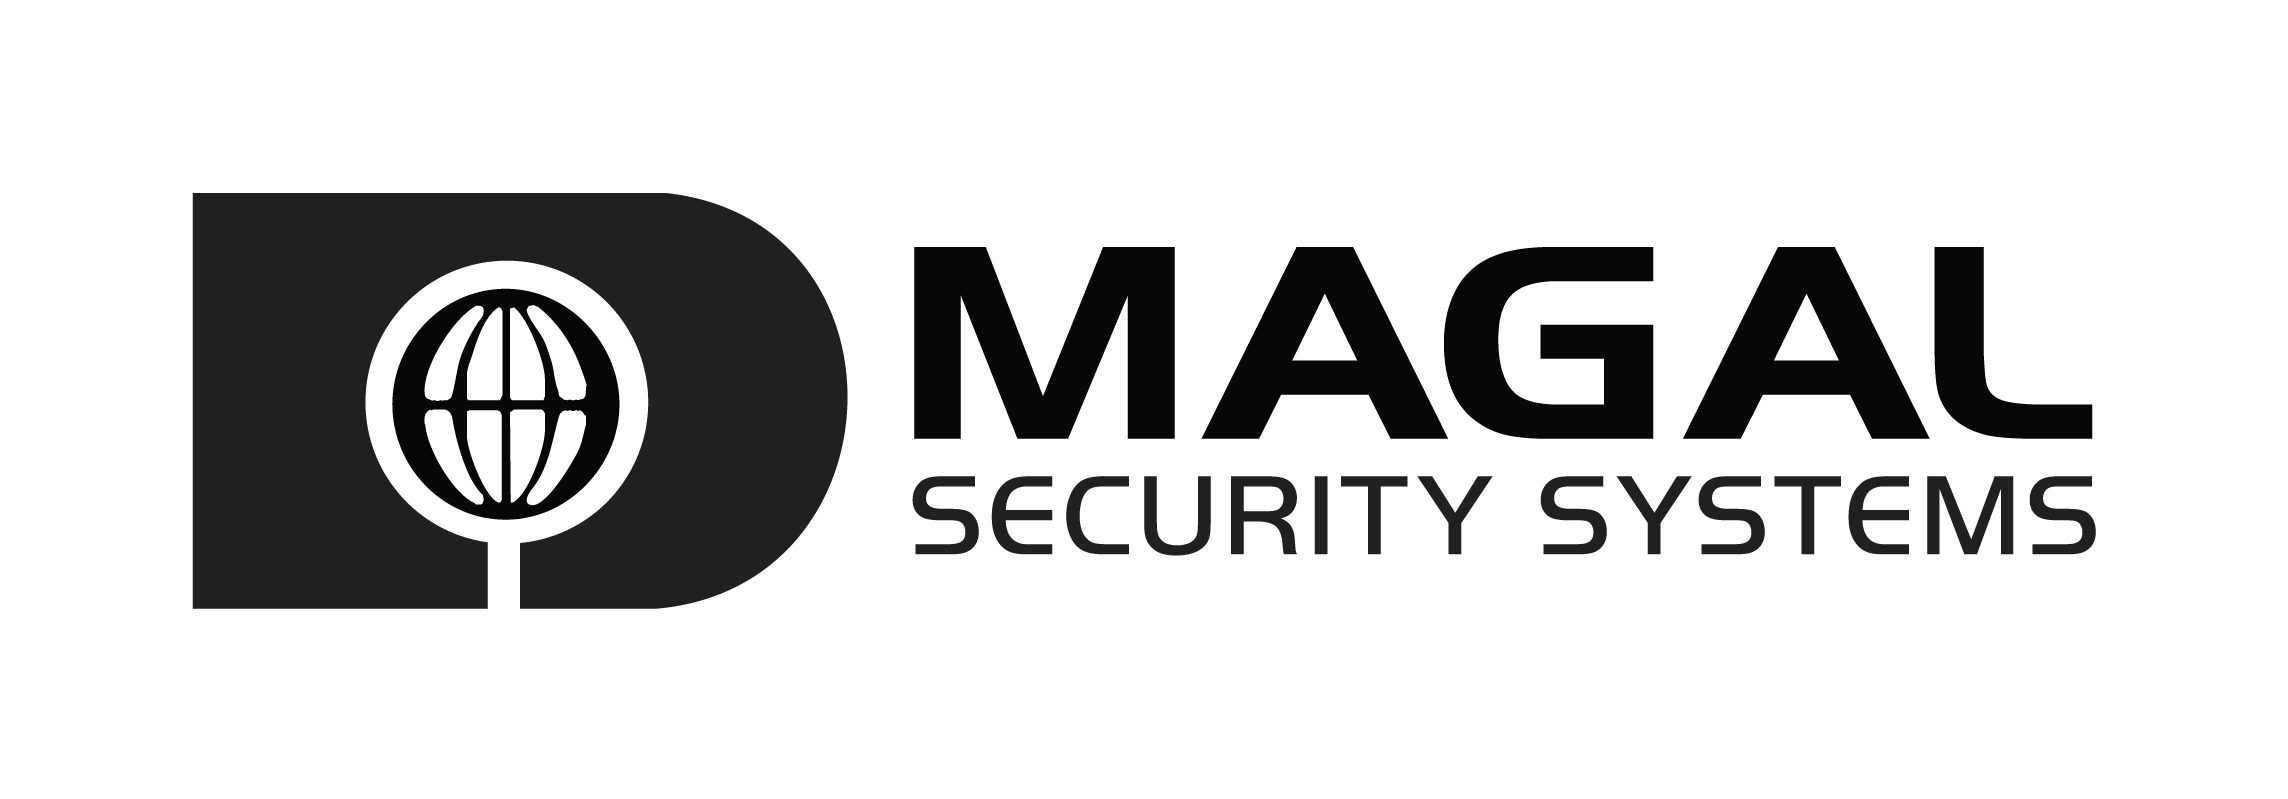 Magal logo